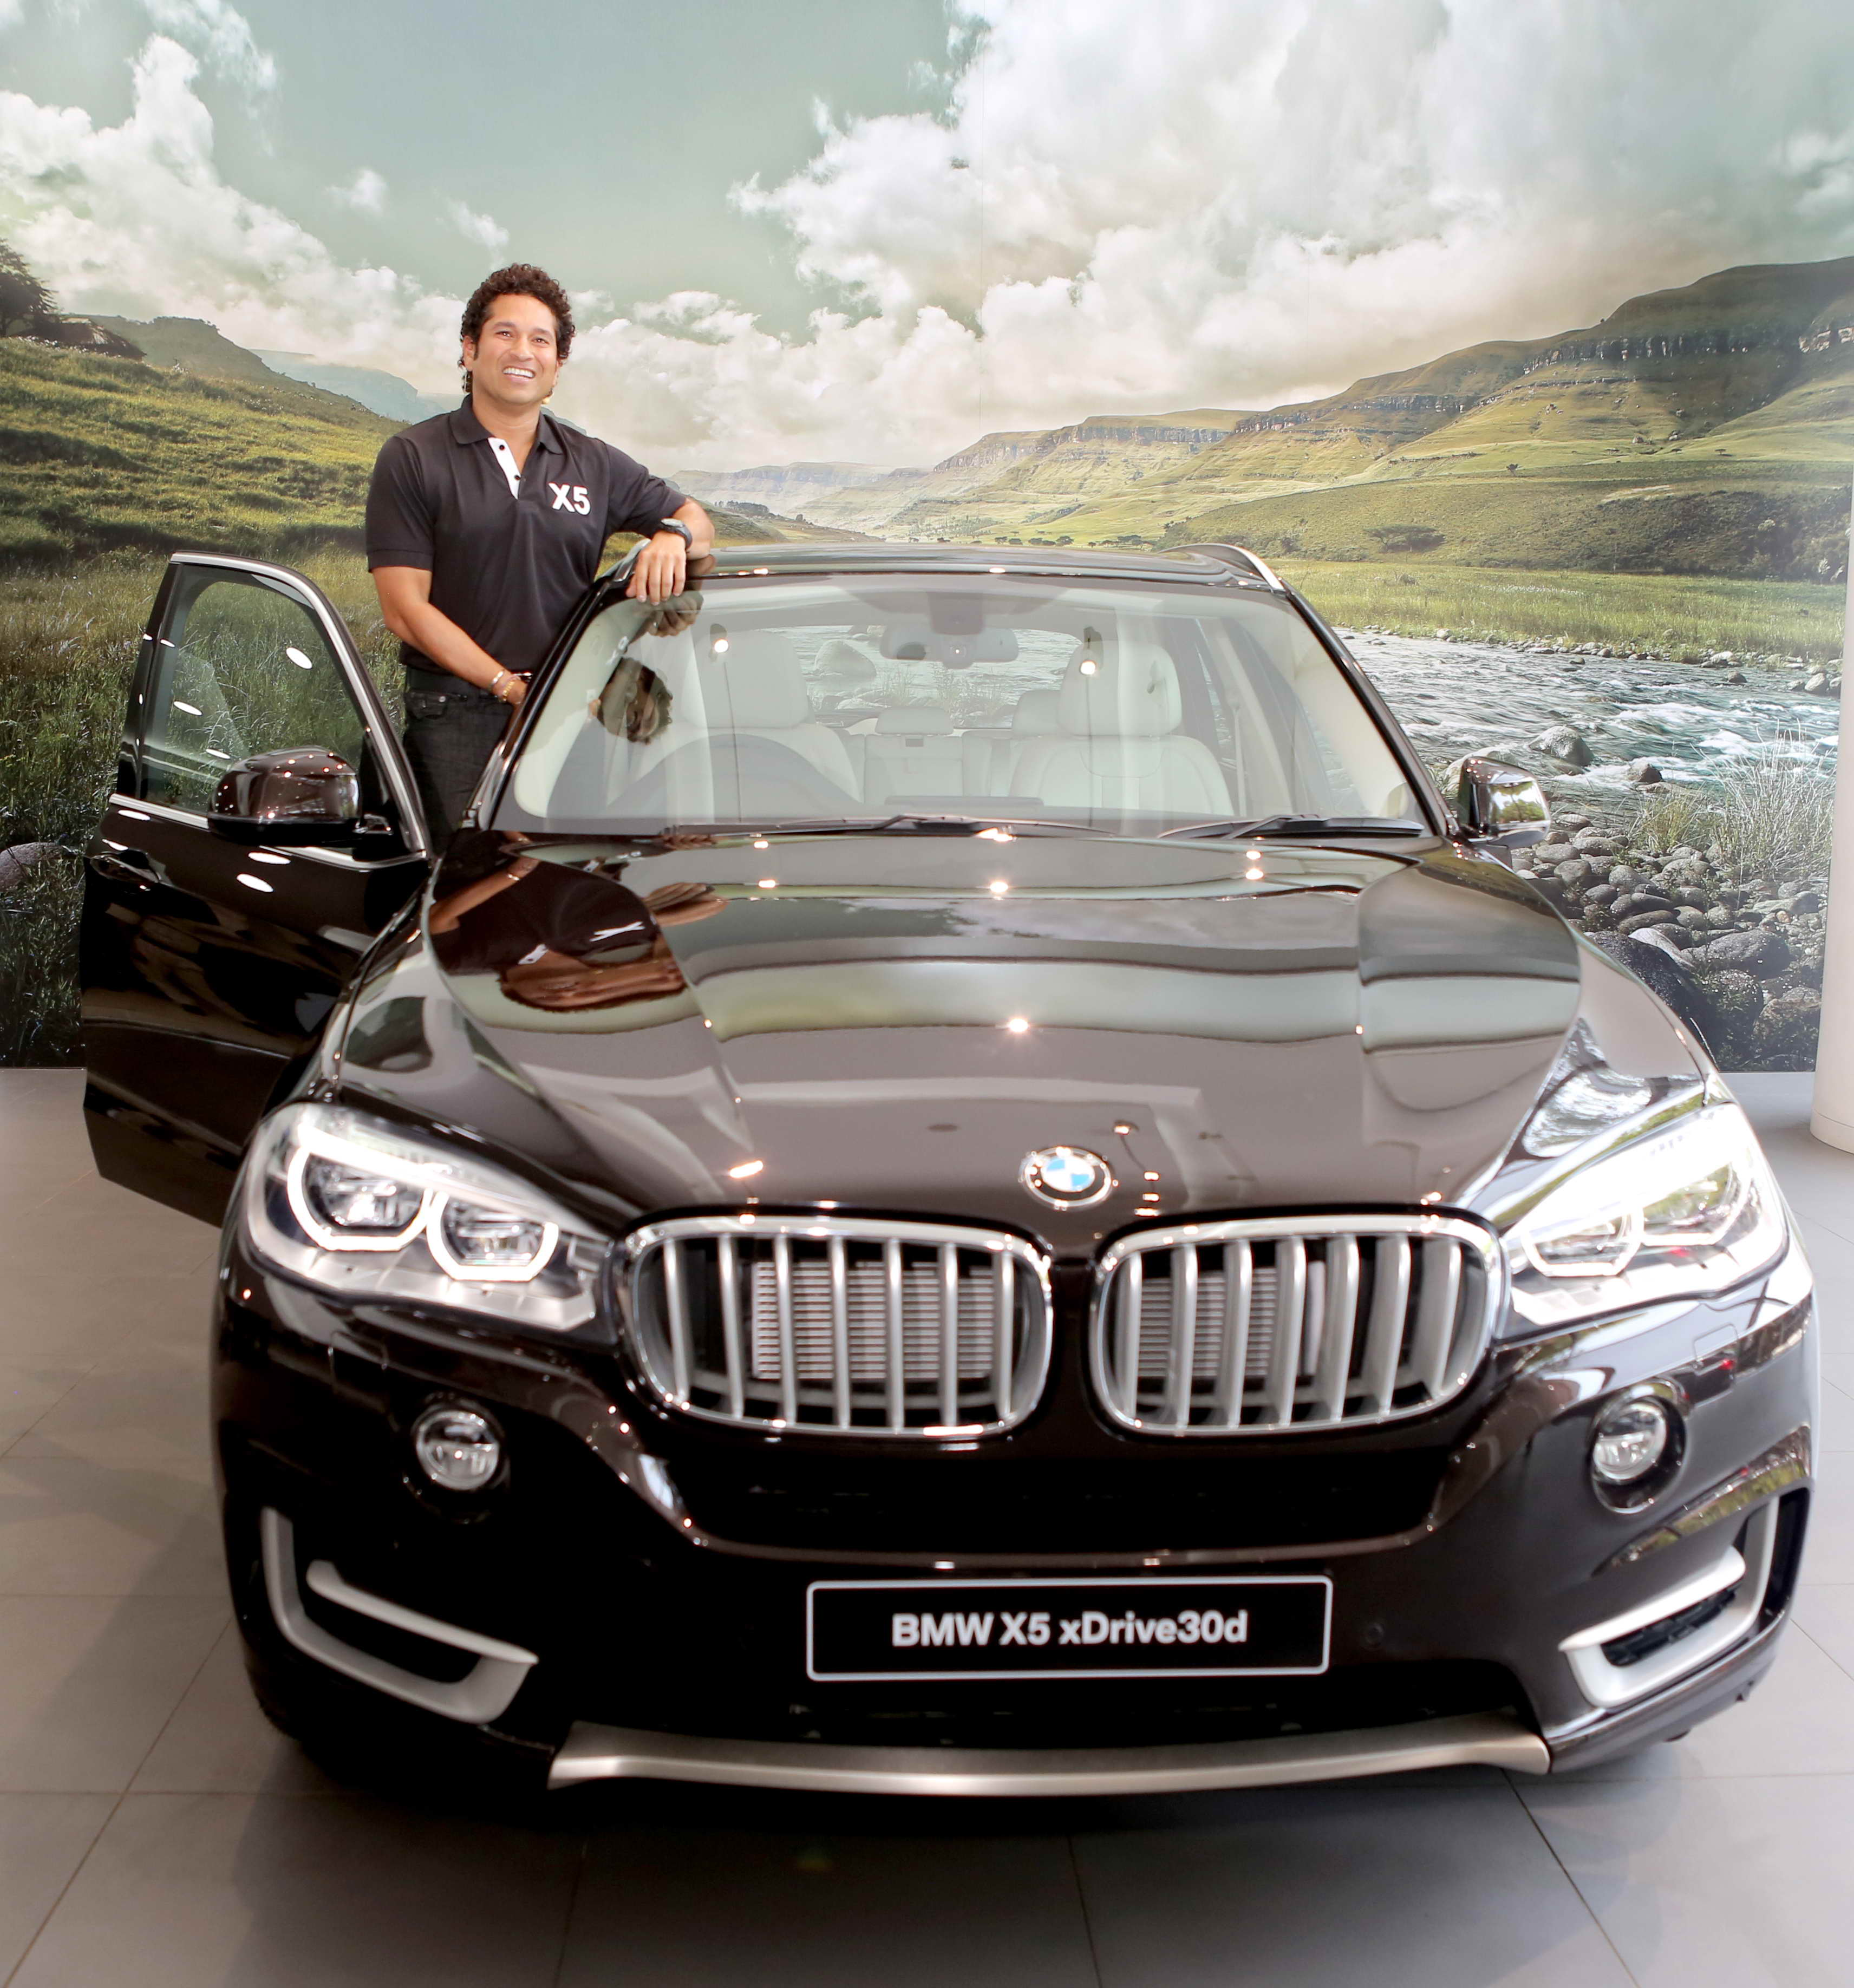 Bmwpany In India: BMW X5 To Be Manufactured In Chennai